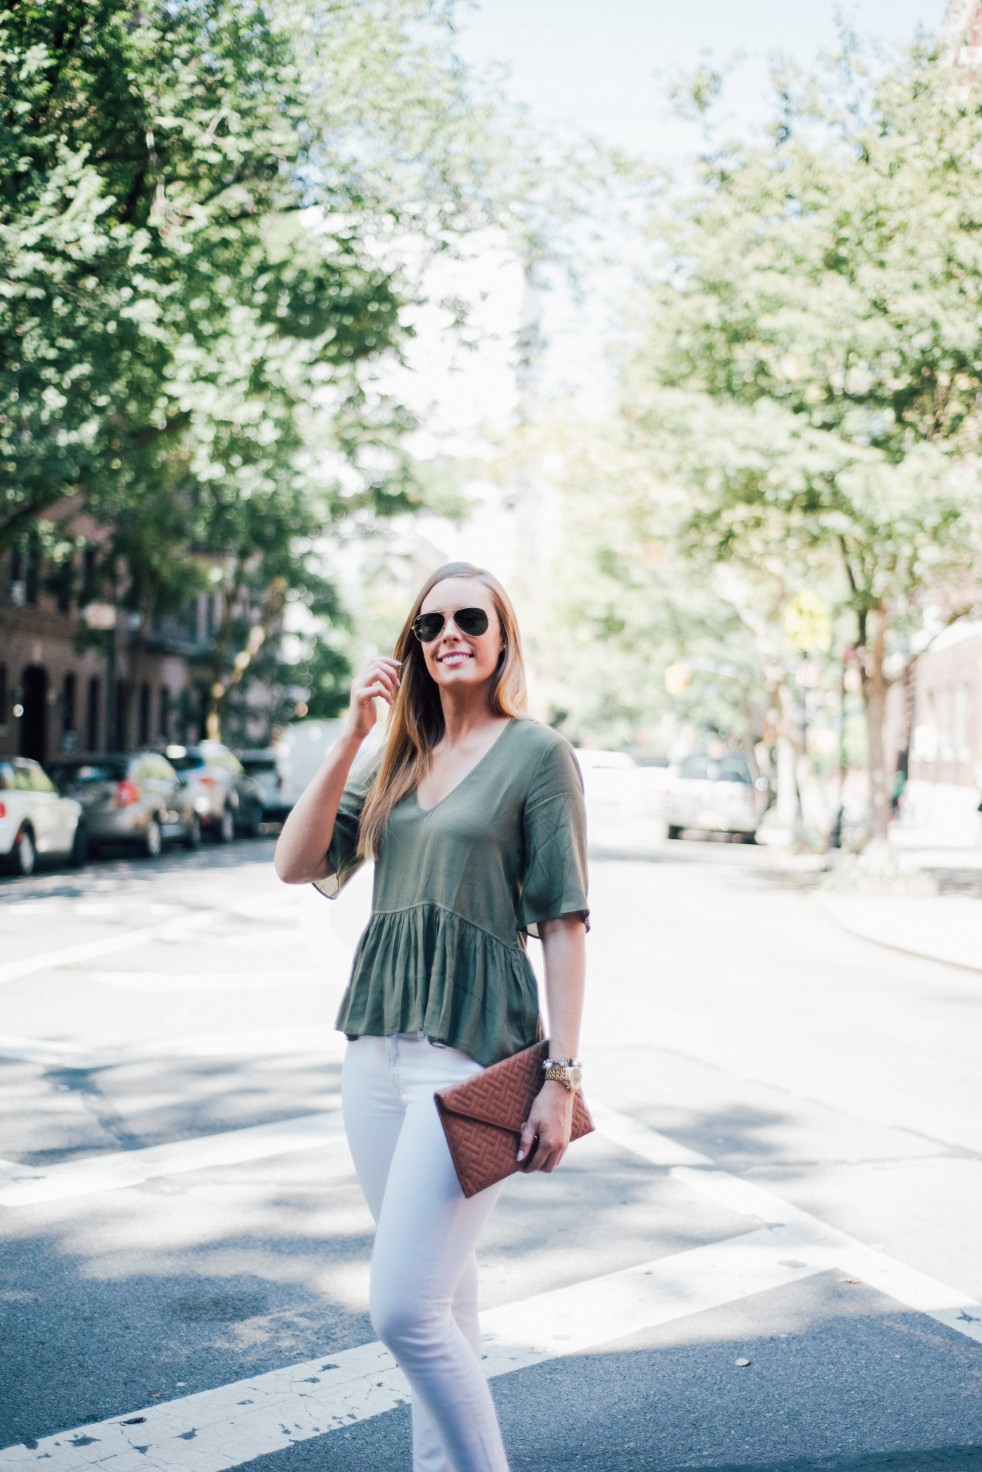 white jeans and peplum top west village fashion new york fashion blogger lauren slade style elixir blog spring outfit ideas 7 - Style Sessions - White Jeans and Peplum Top in the West Village featured by popular US style blogger, Style Elixir